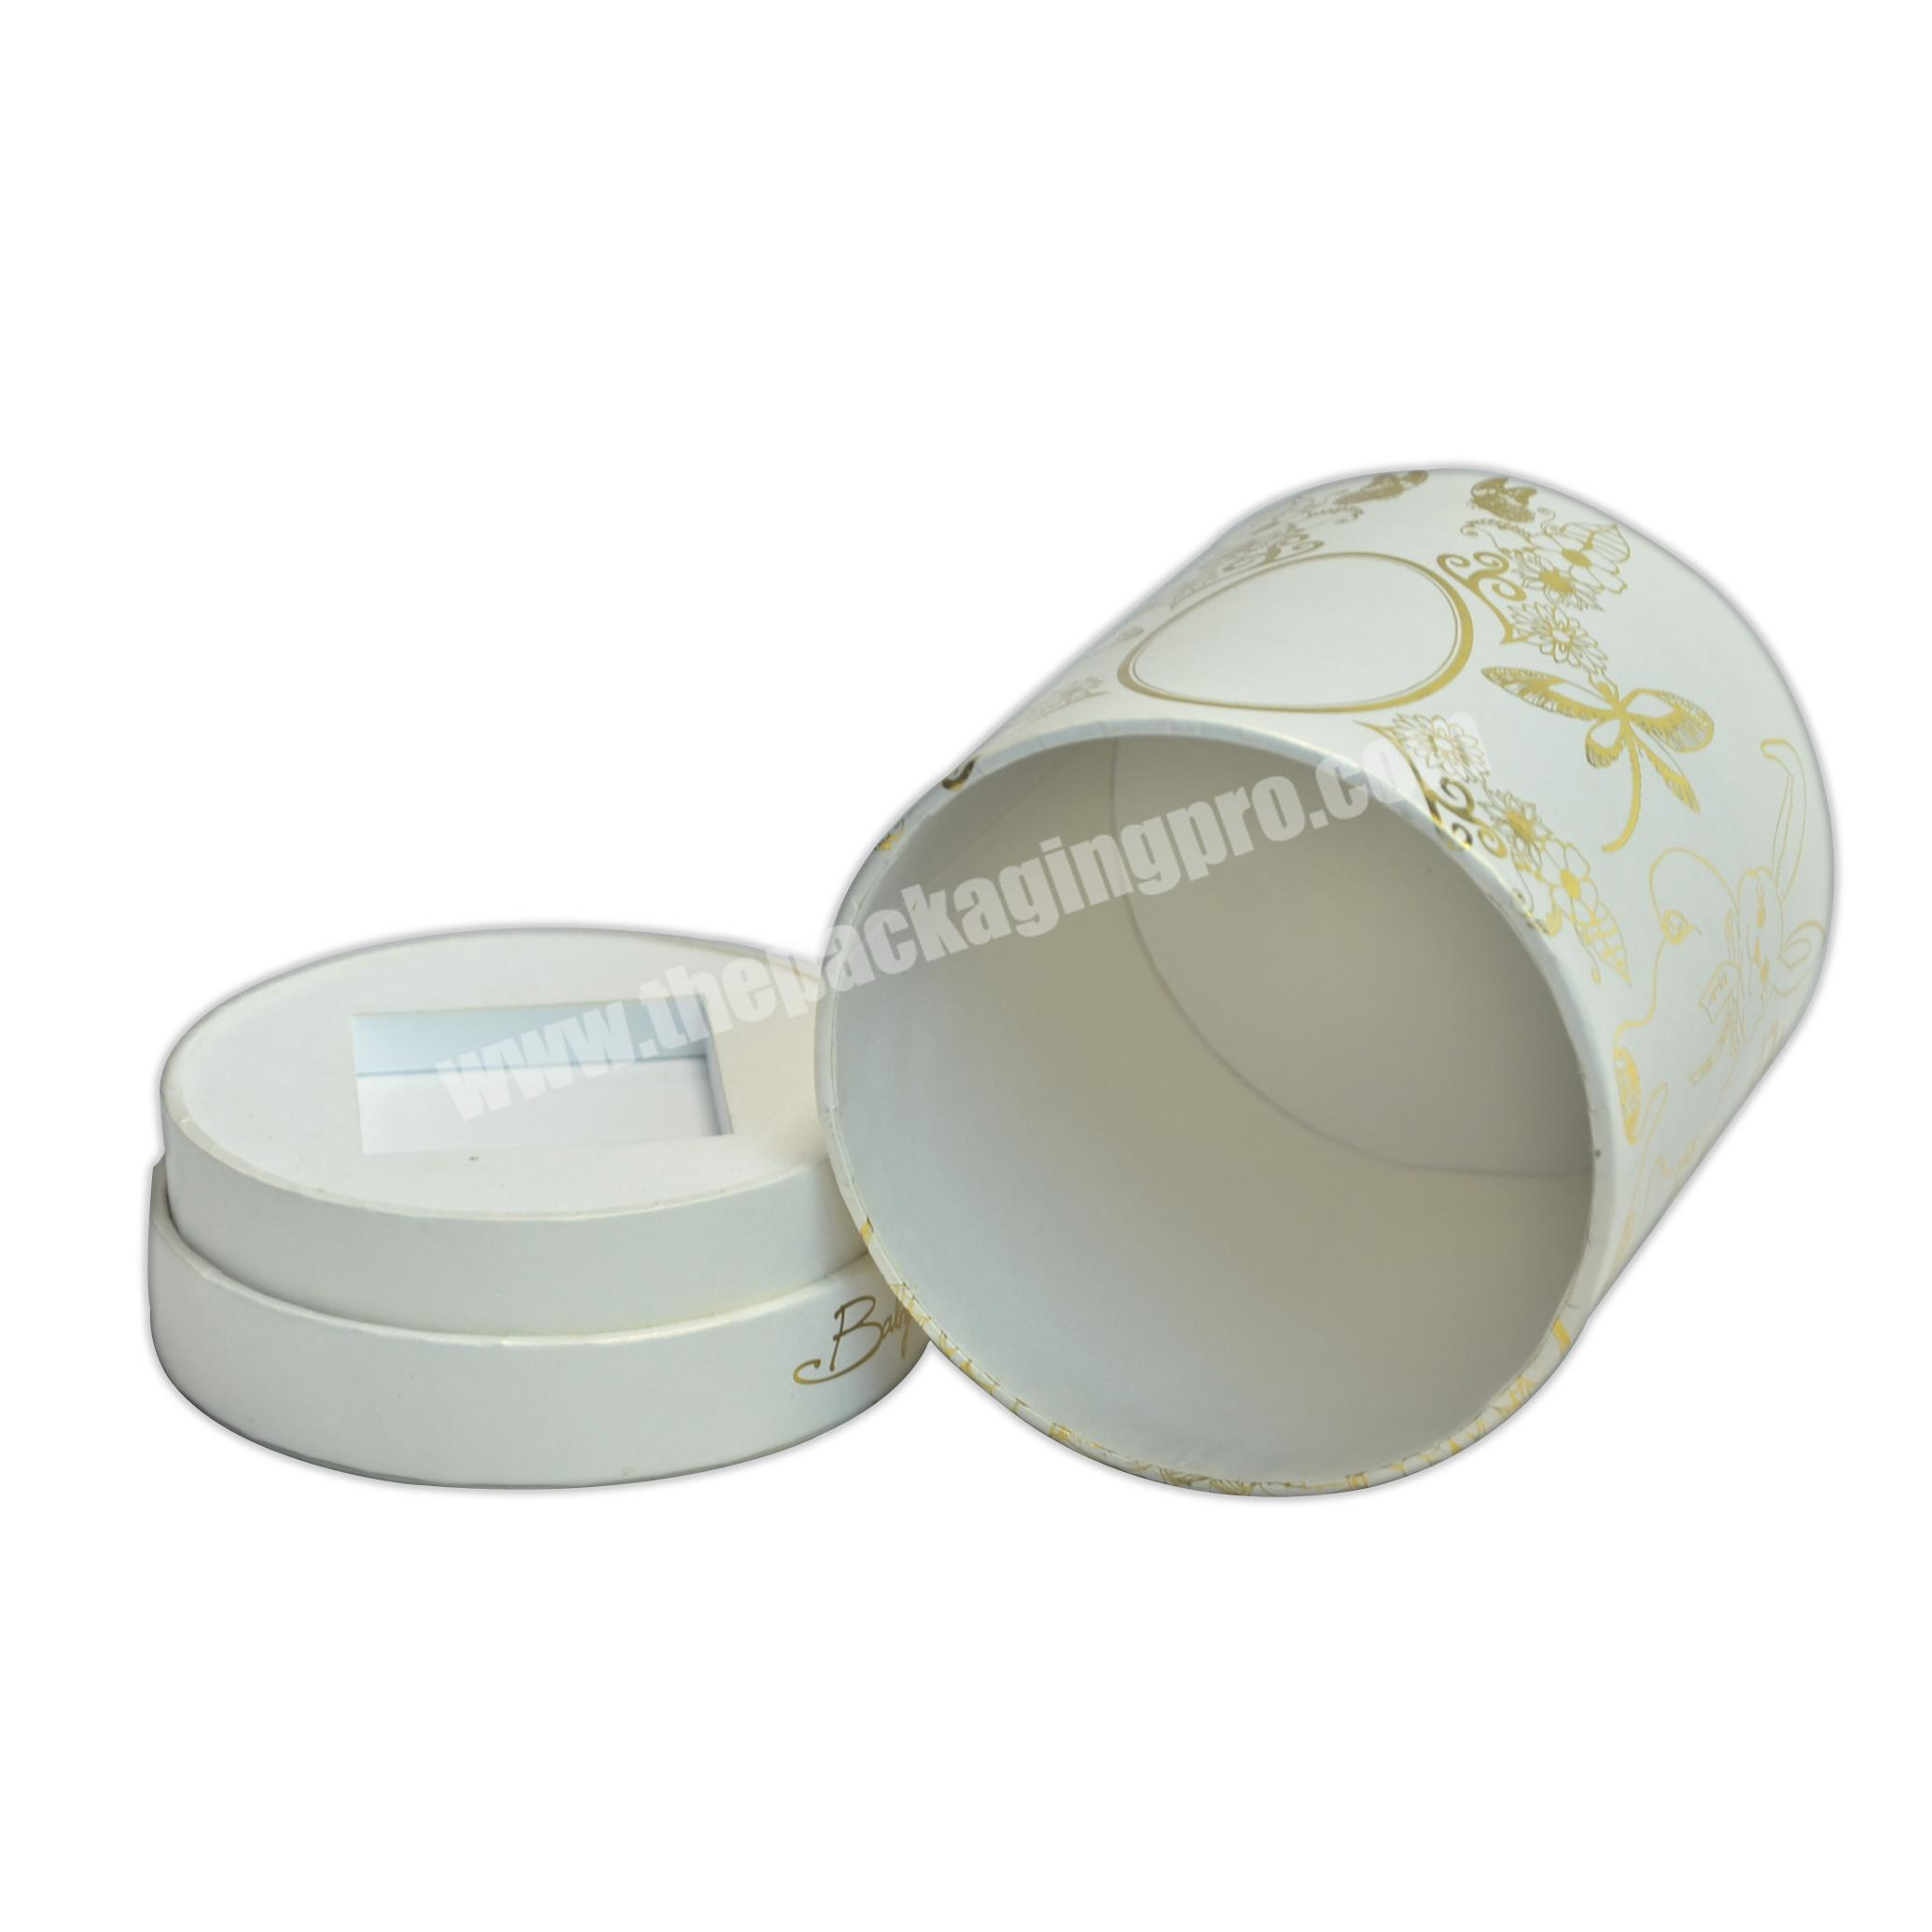 Perfume Paper Box Cylinder Tube Container Paper Box for Perfume Packing